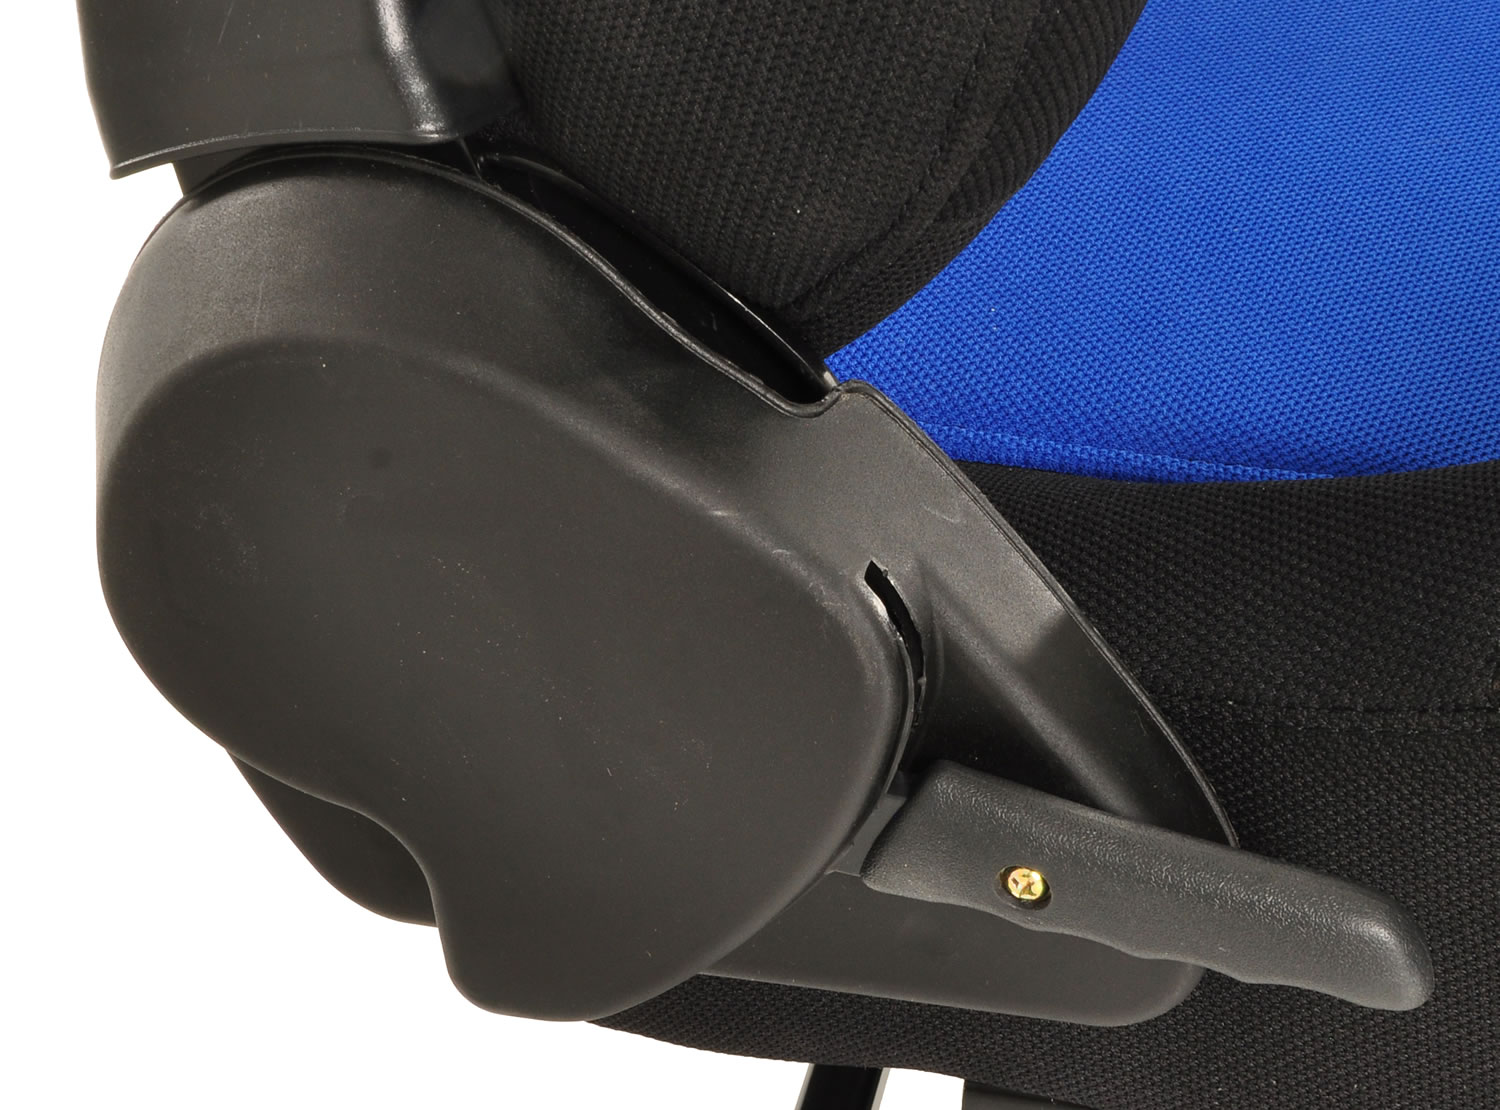 Conquer-Racing-Simulator-Cockpit-Driving-Seat-Reclinable-with-Gear-Shifter-Mount miniatuur 18